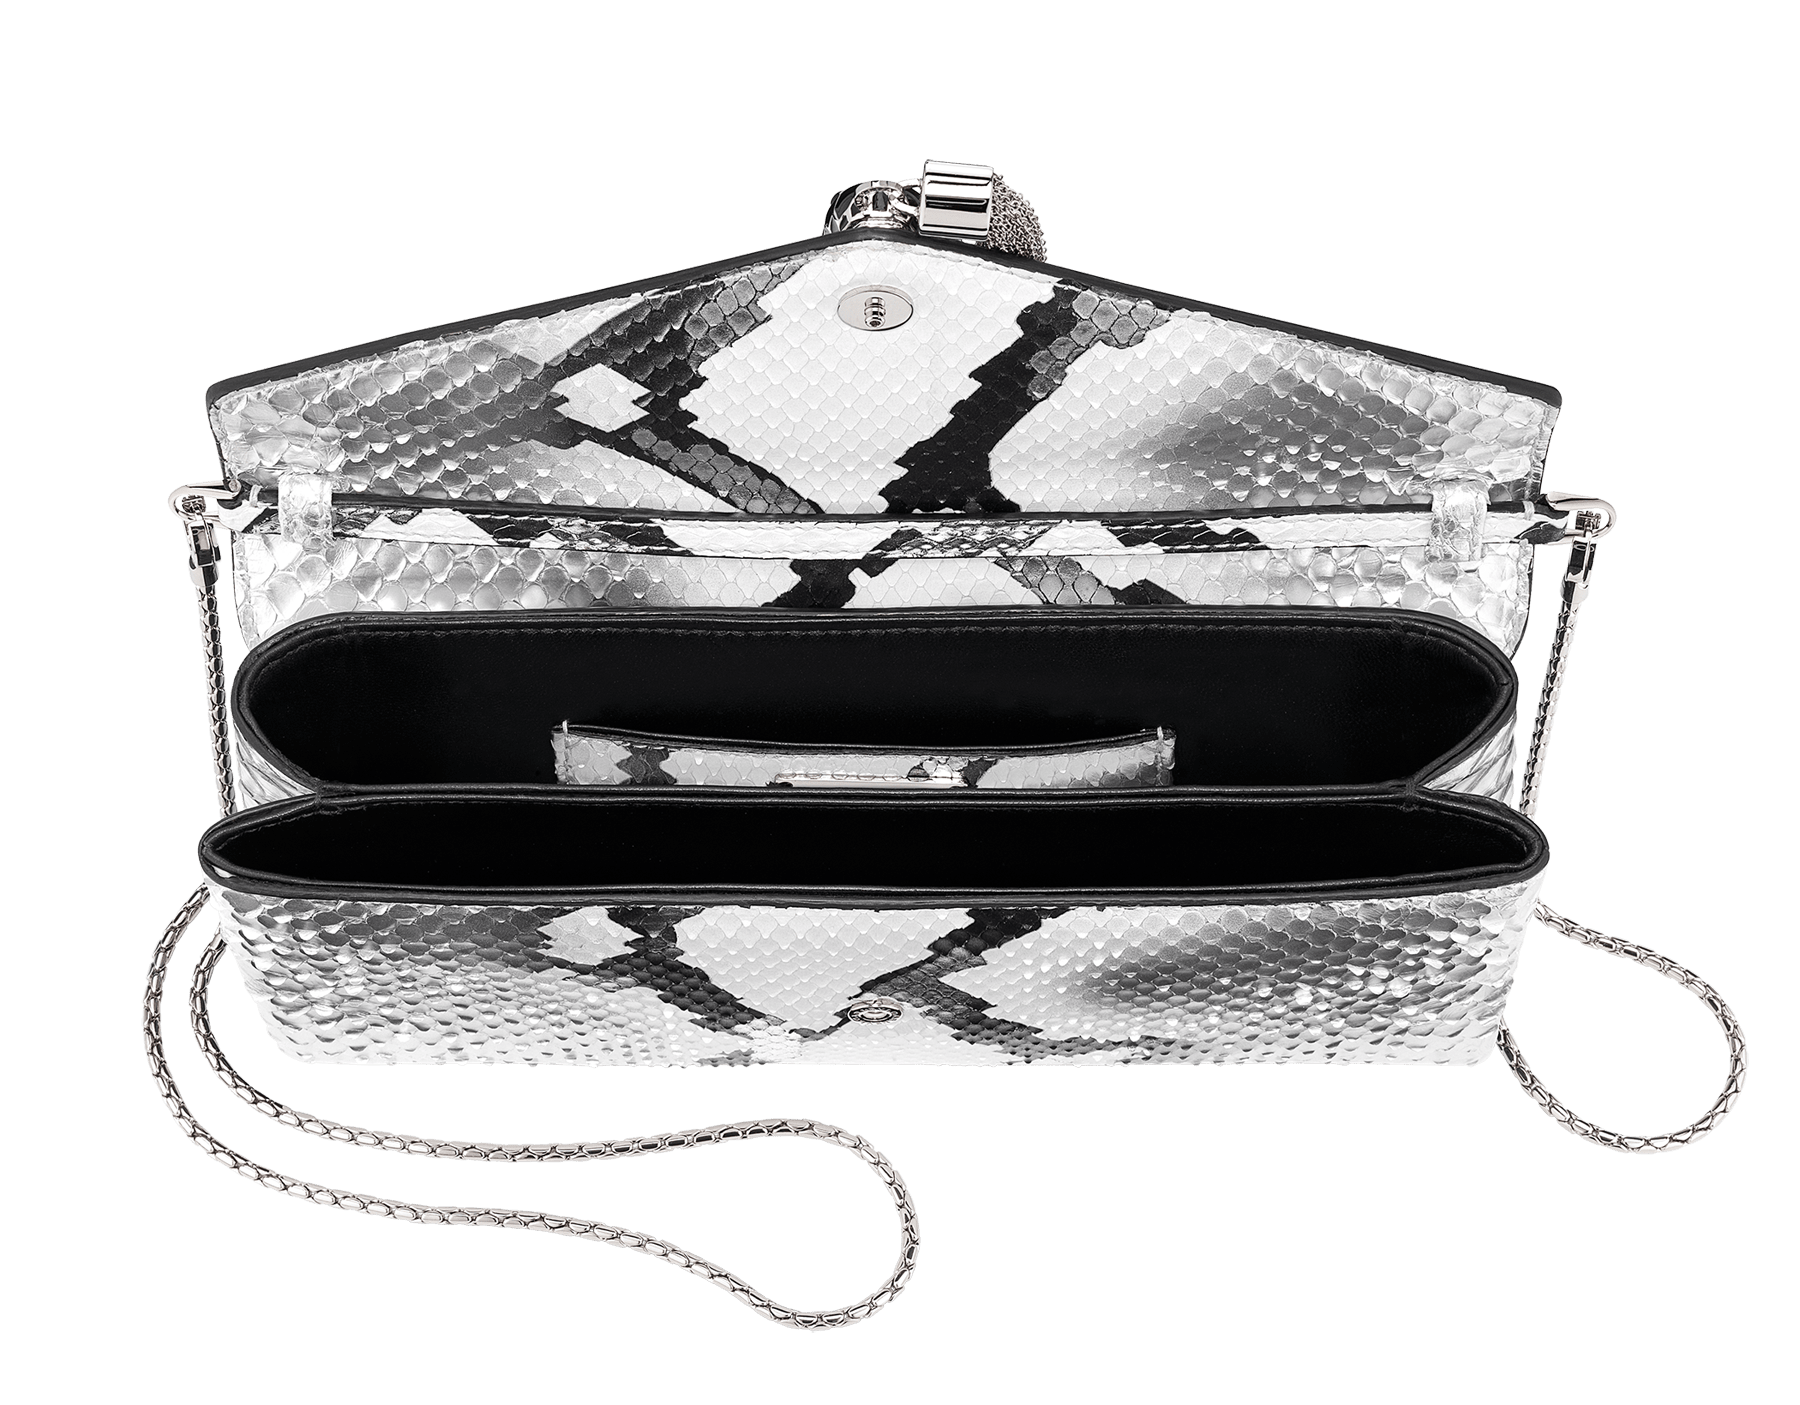 """Serpenti"" evening clutch bag in white and silver Ice Glam python skin. Iconic snake head stud closure with tassel in palladium plated brass enriched with black shiny enamel and black onyx eyes. 288976 image 4"